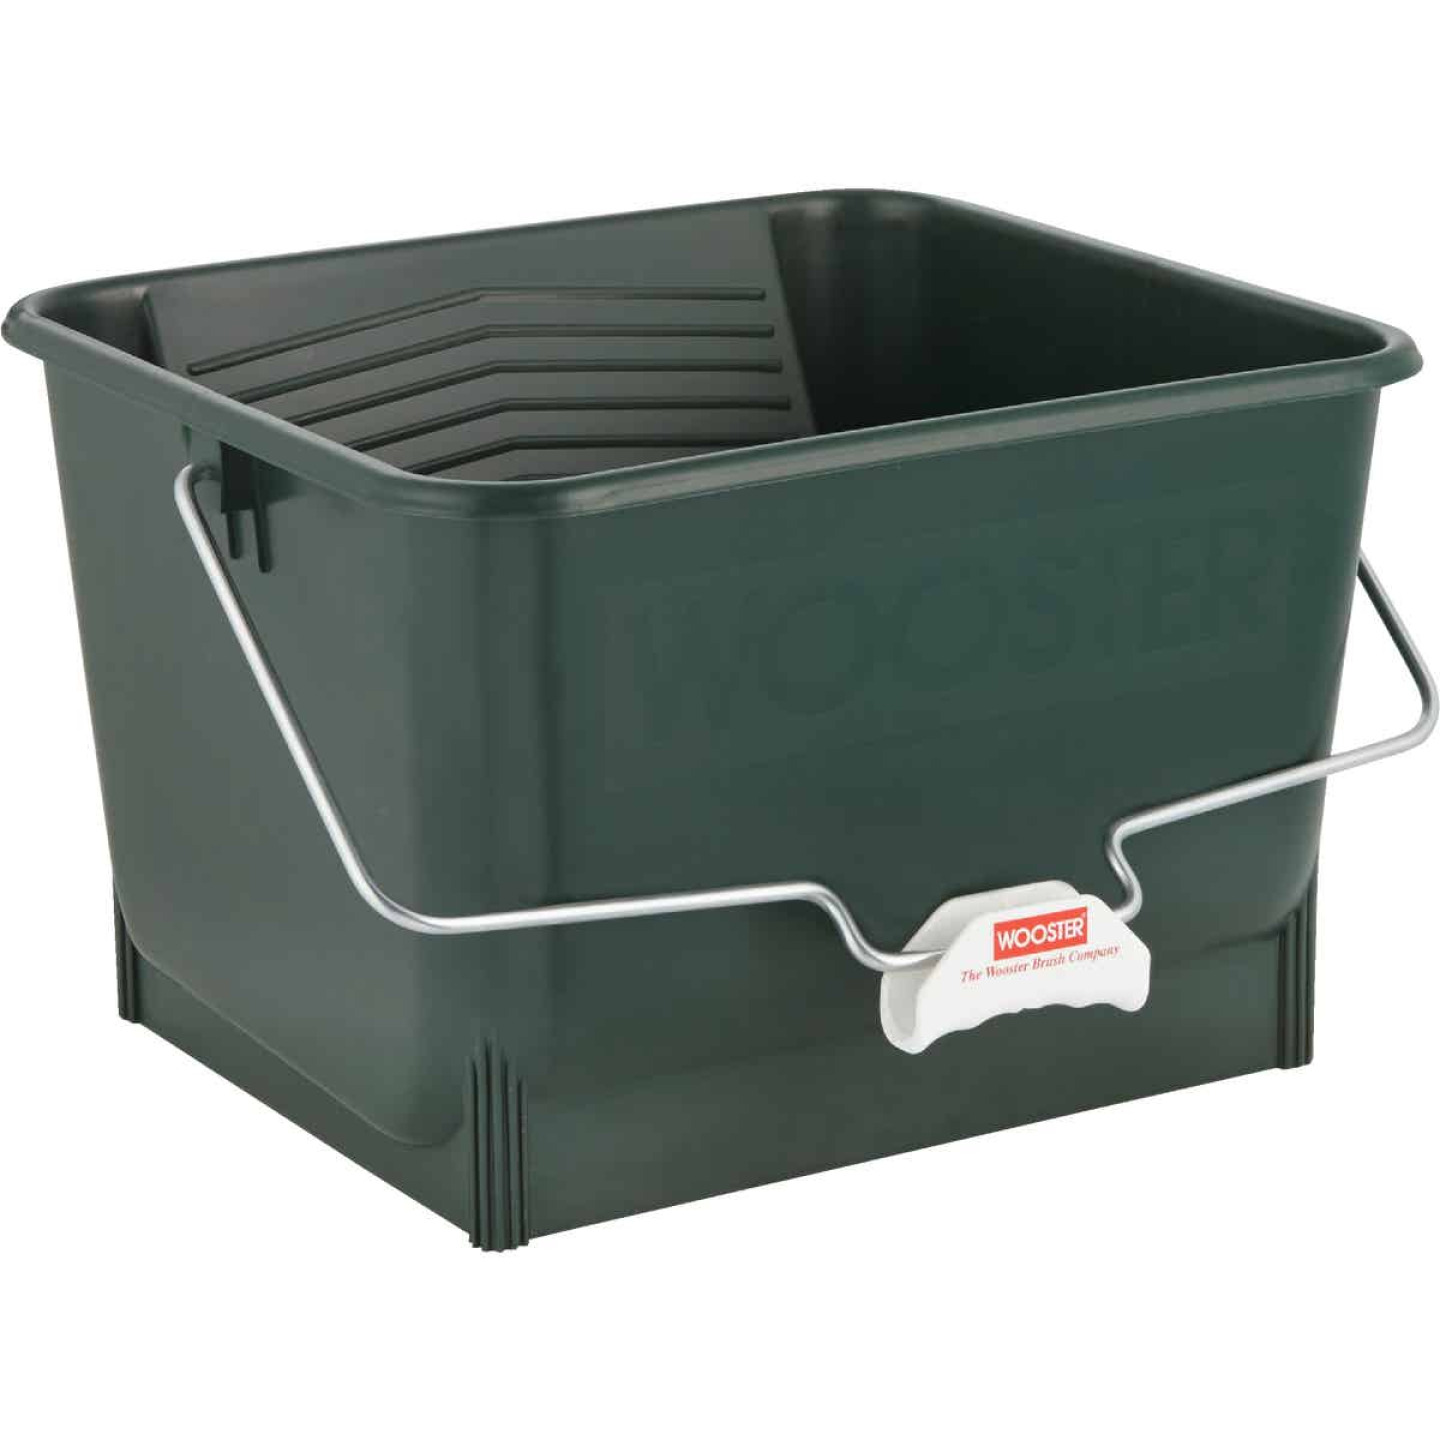 Wooster 4 Gal. Green Painter's Bucket Image 2